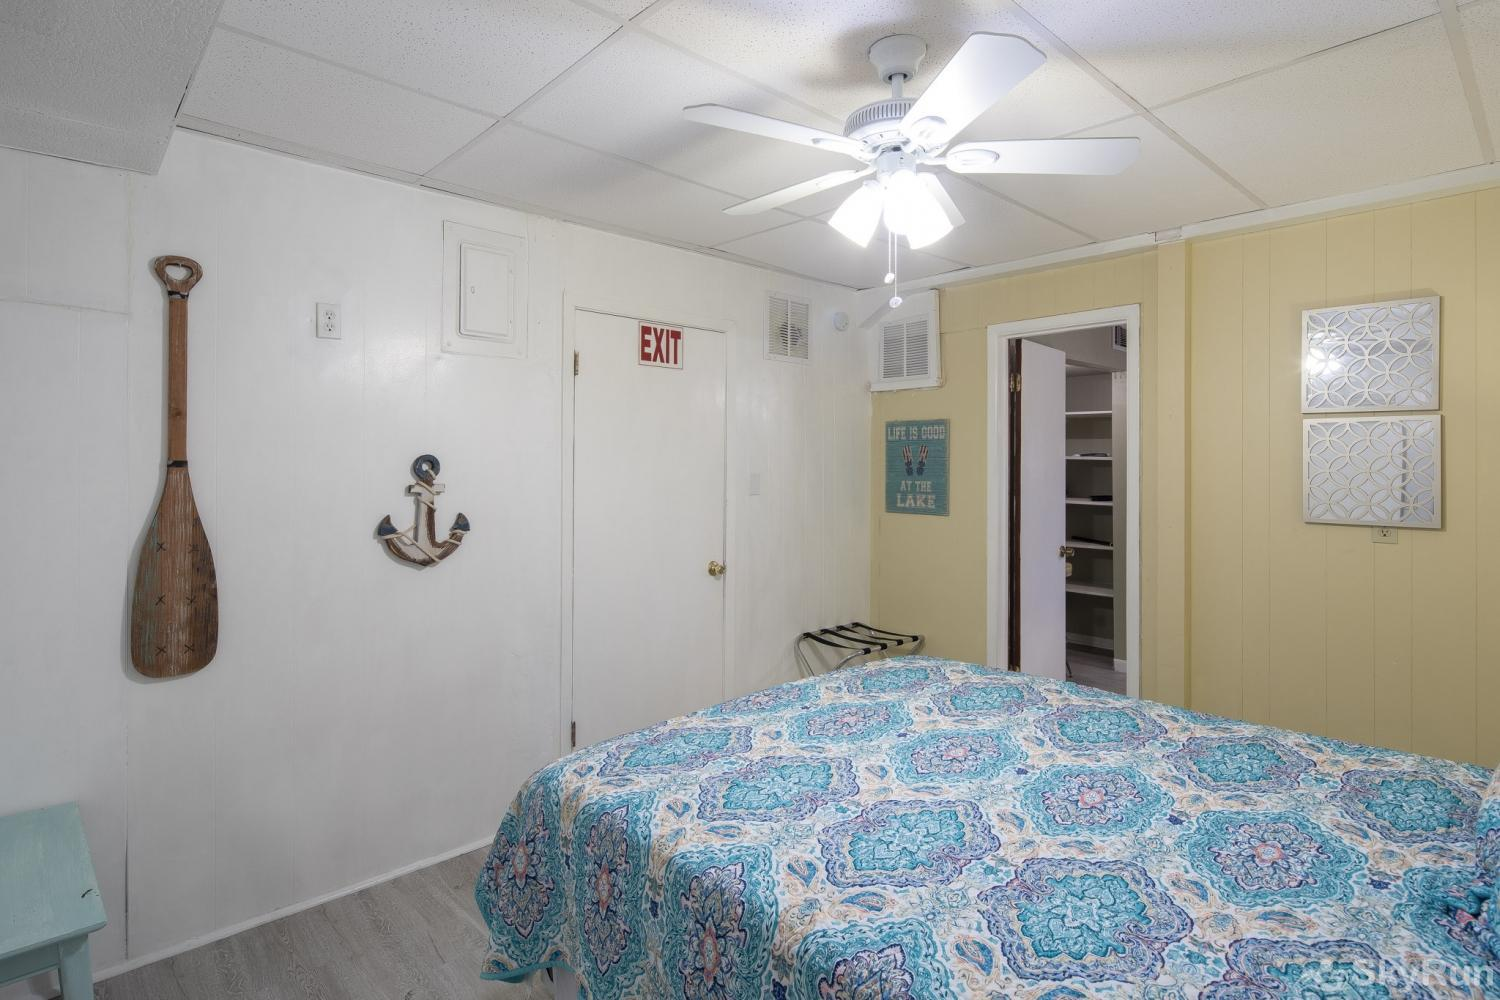 TEXAS ROSE LODGE Third bedroom, cont.